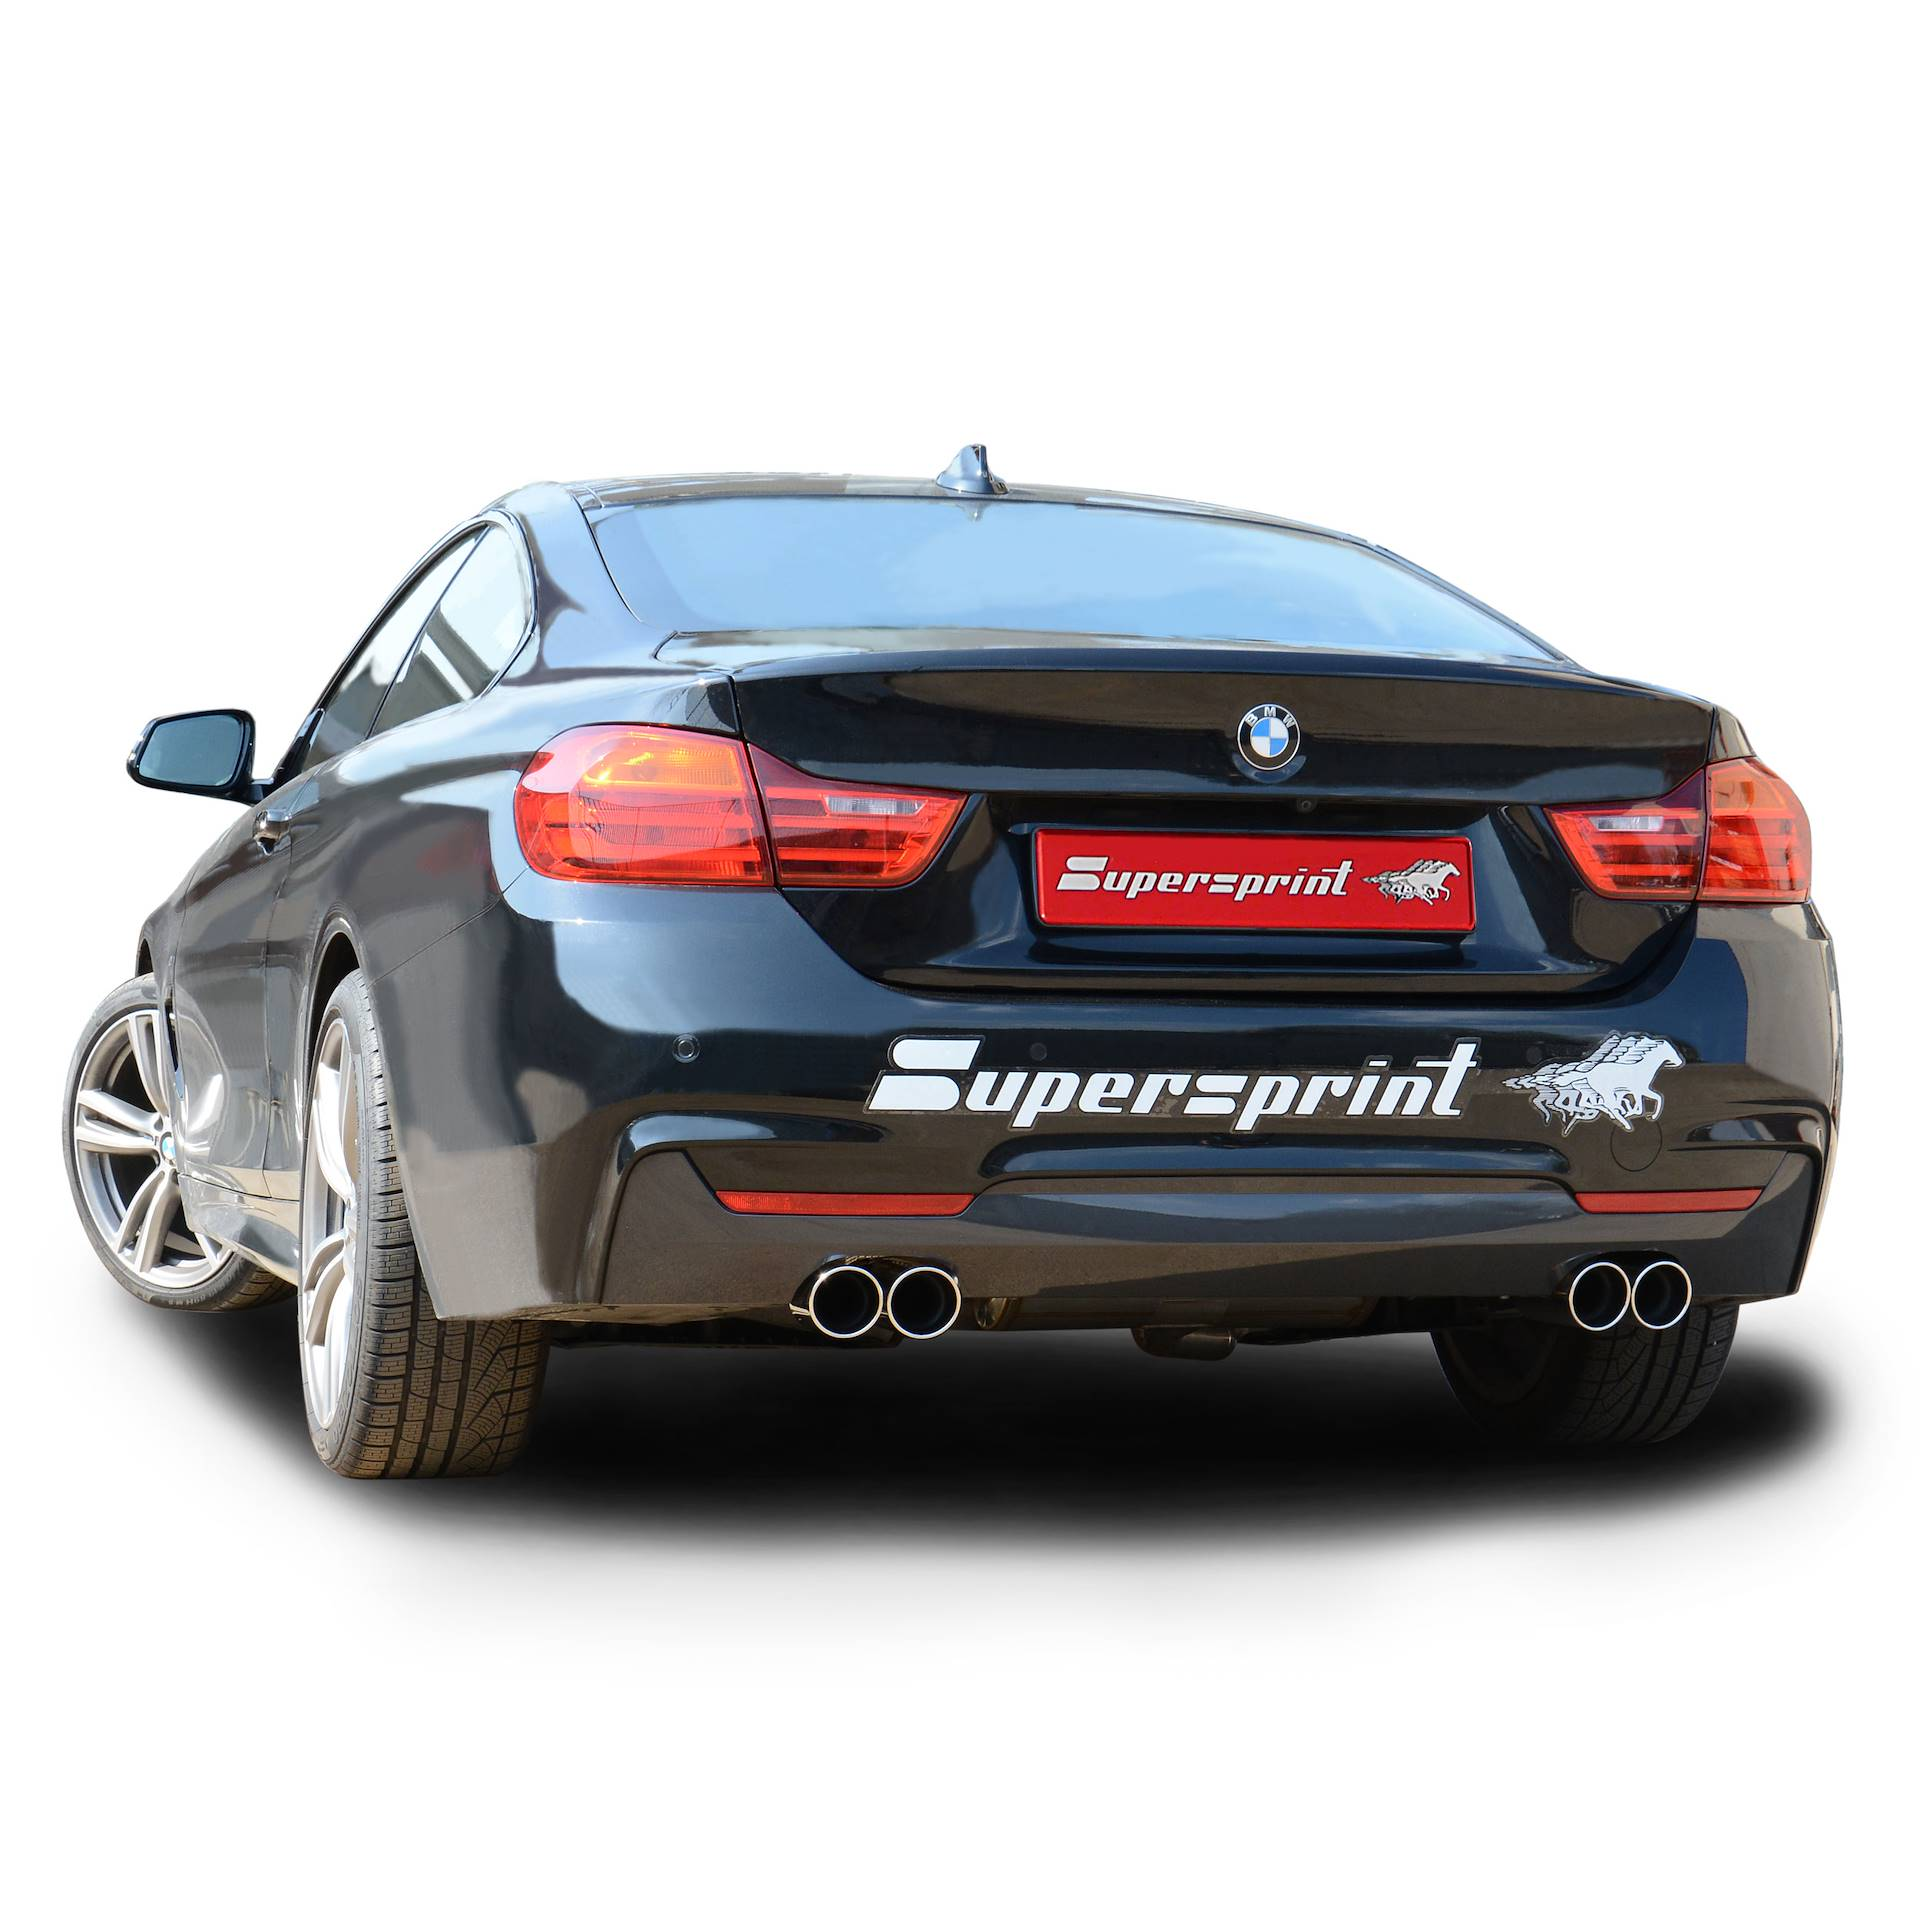 BMW - BMW F32 Coupè 435i (304 Hp/306 Hp) 2013 -> 2016